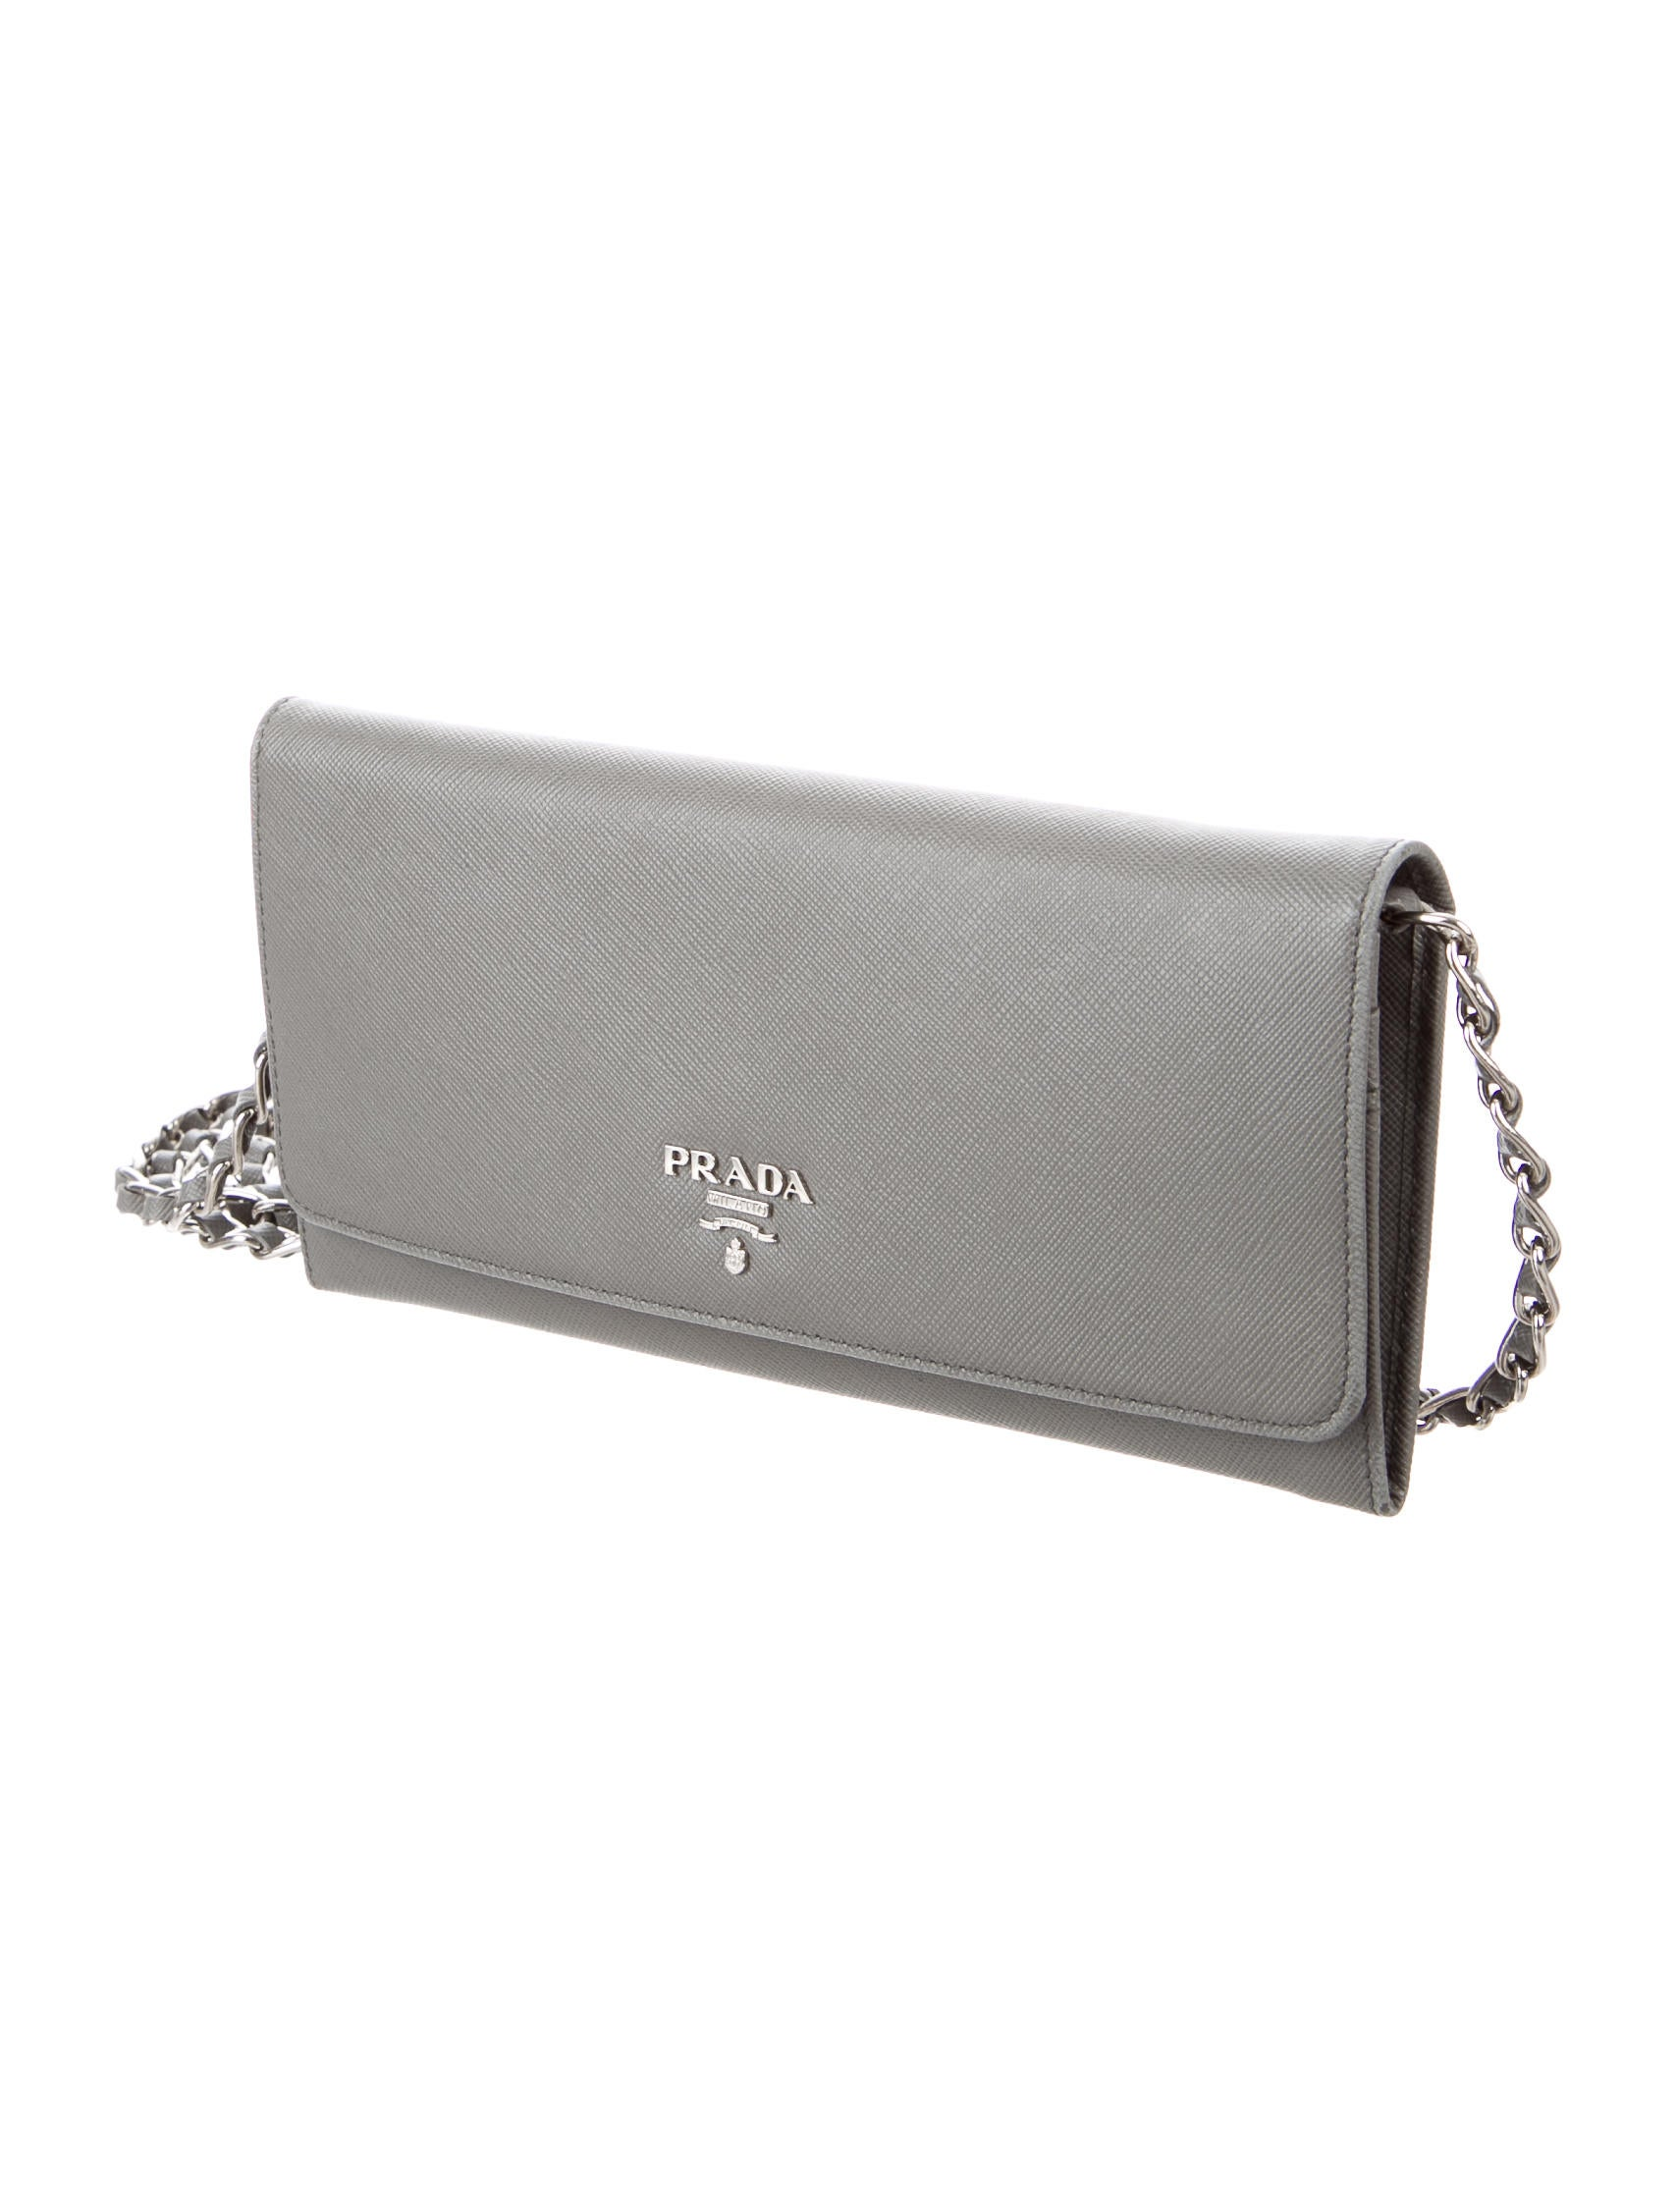 19401388e9fc Prada Wallet On A Chain With Silver. Prada Saffiano Metal ...